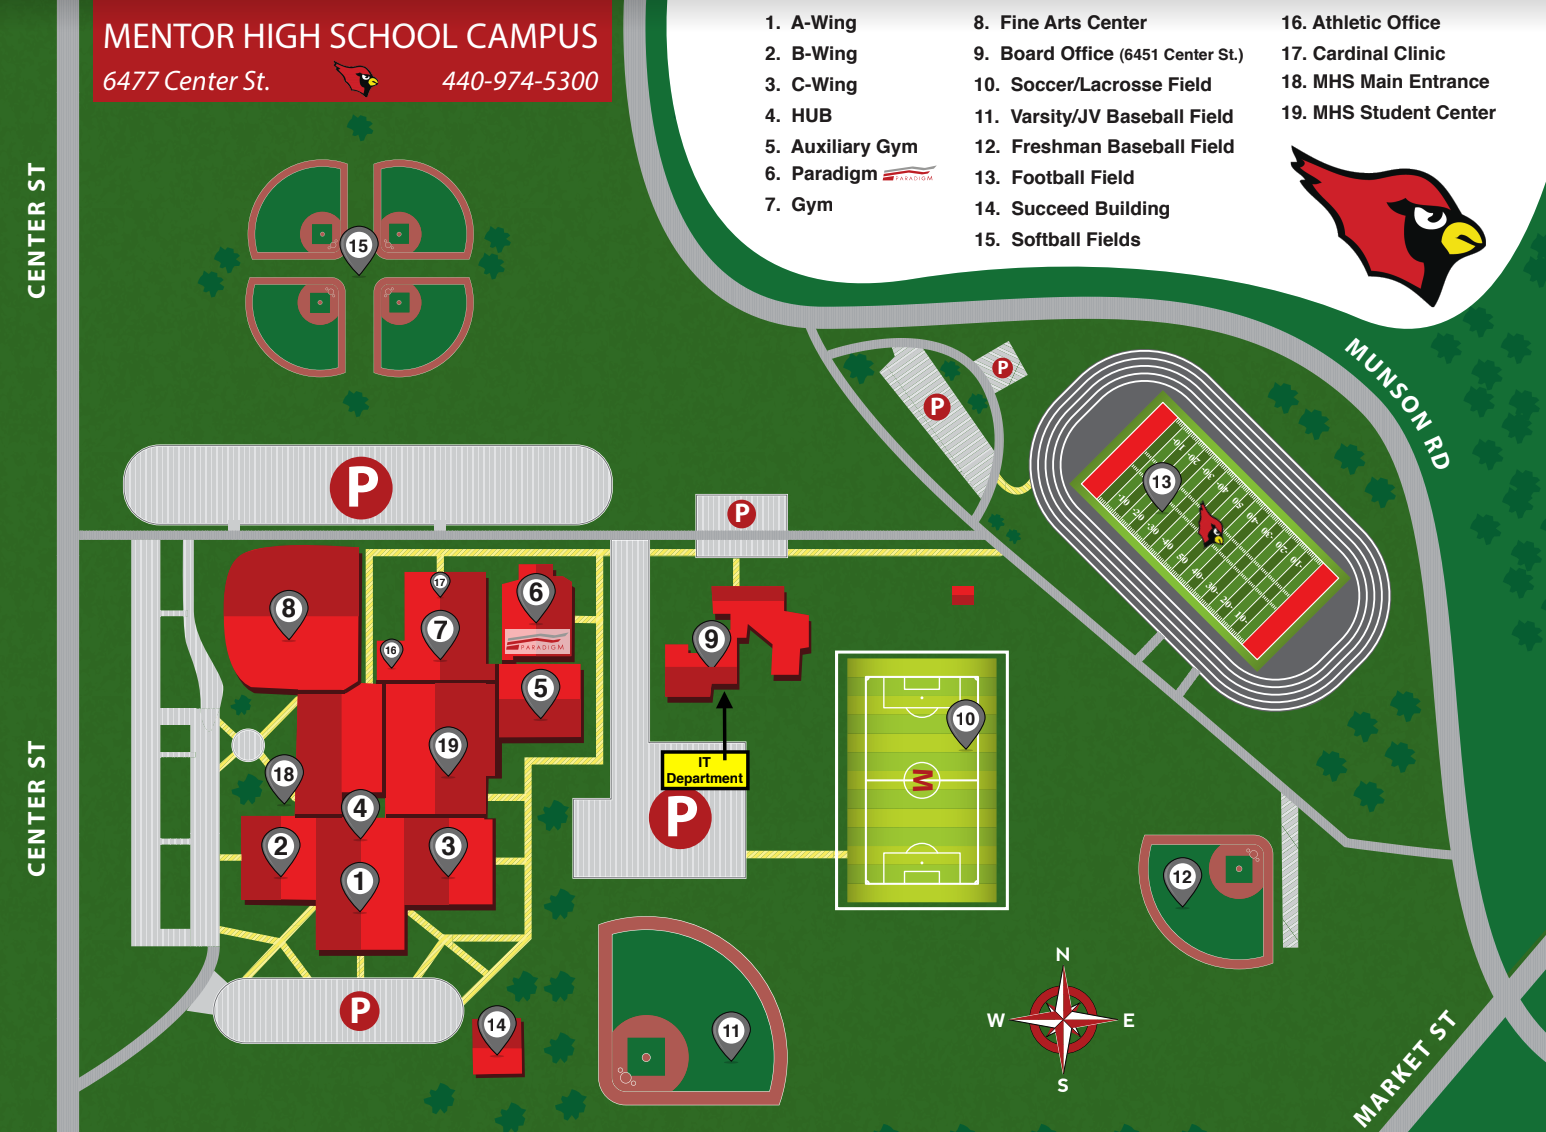 Mentor Campus Map - IT Department